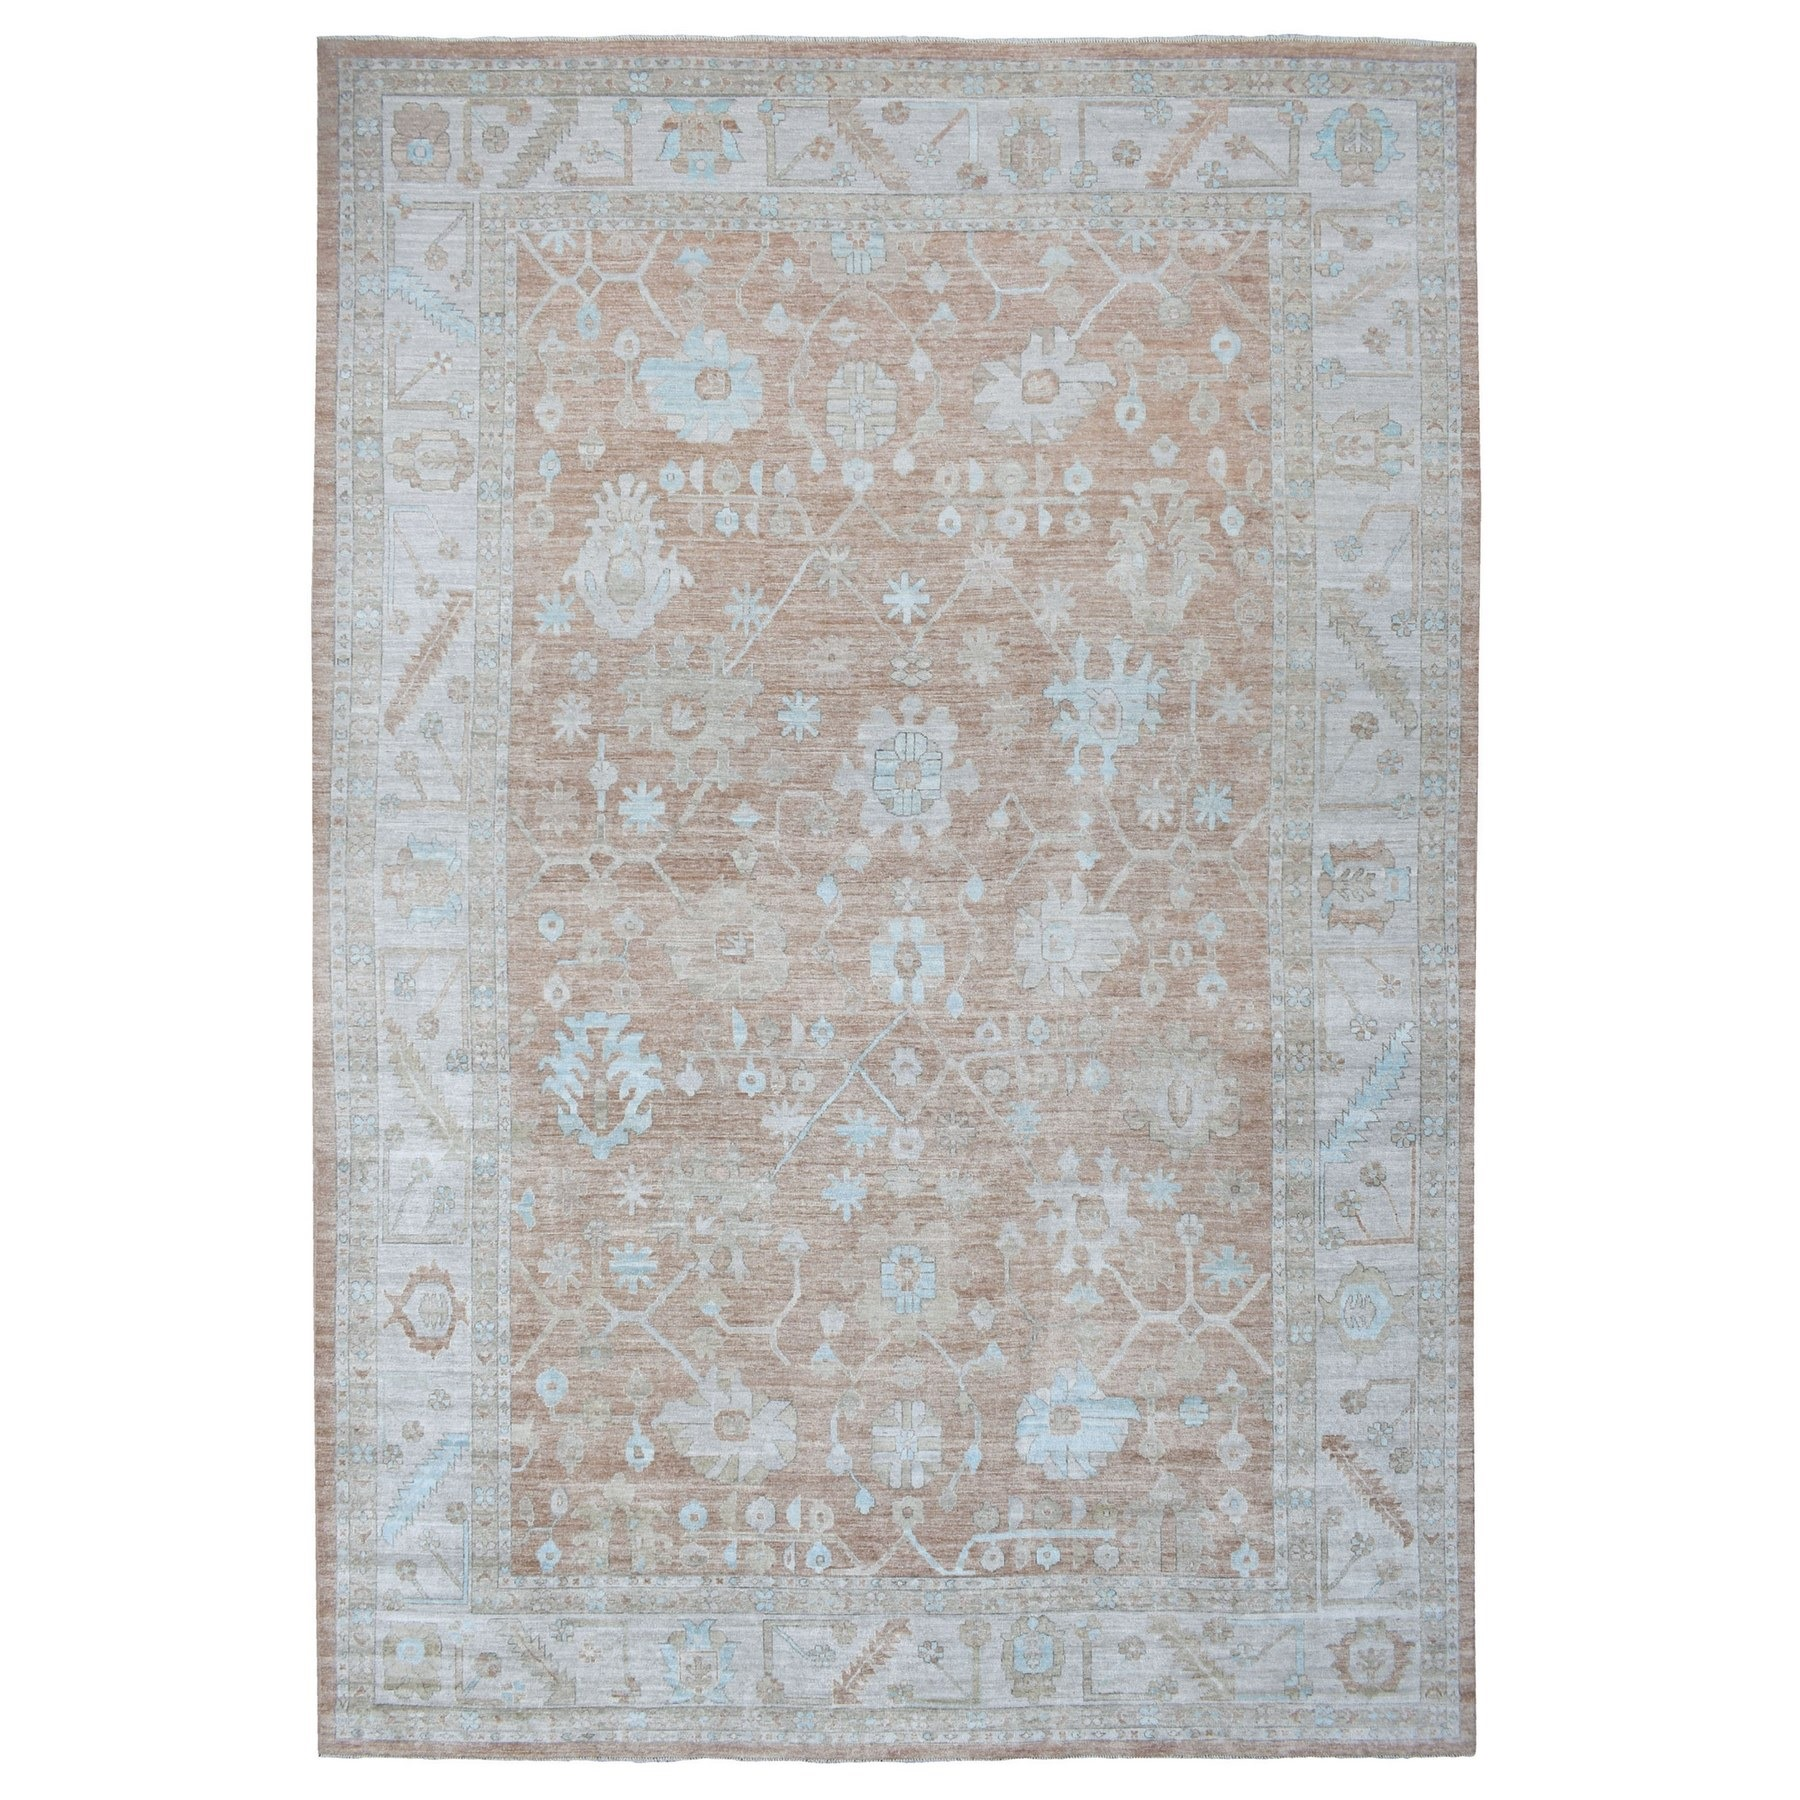 Oushak And Peshawar Rugs LUV609012